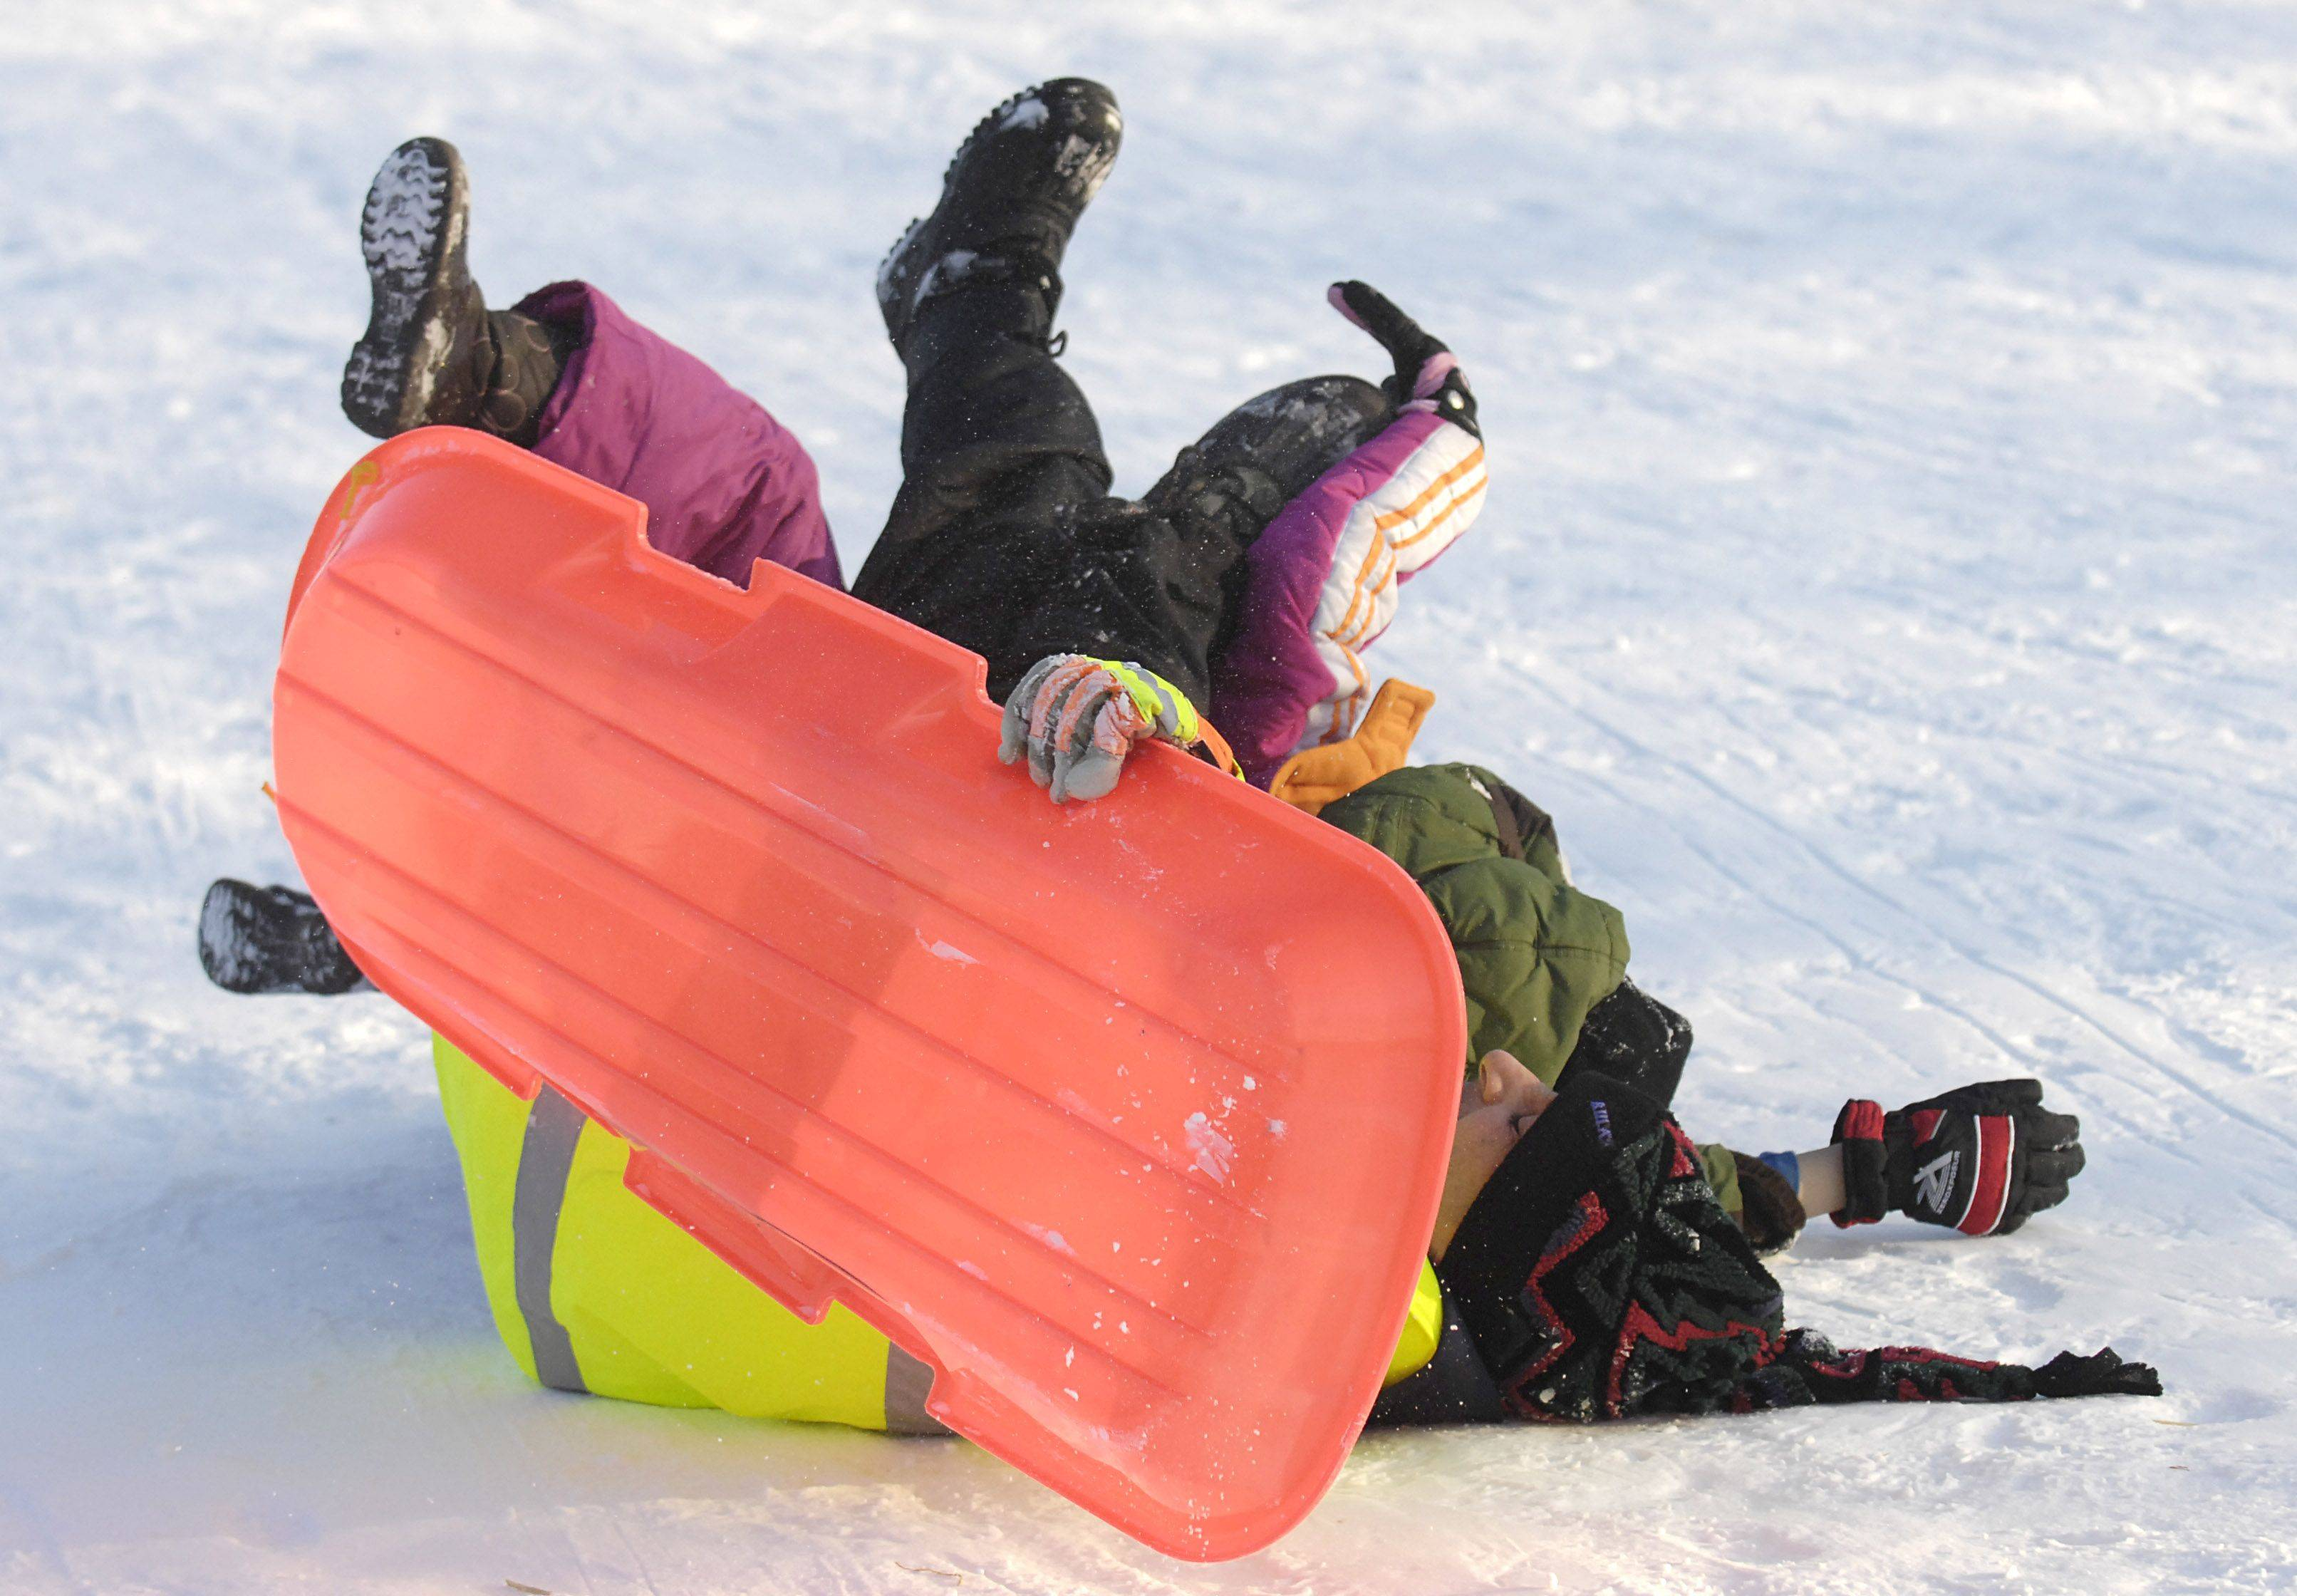 It's a tangle of legs in the air as Dave Giandinoto and his children, Dominic, 11, and Mia, 9, tumble to a stop at the bottom of the hill at Fabyan Forest Preserve in Geneva on Tuesday, December 28. The trio were smoothly sailing down the hill until the sled took a turn and dumped them out.